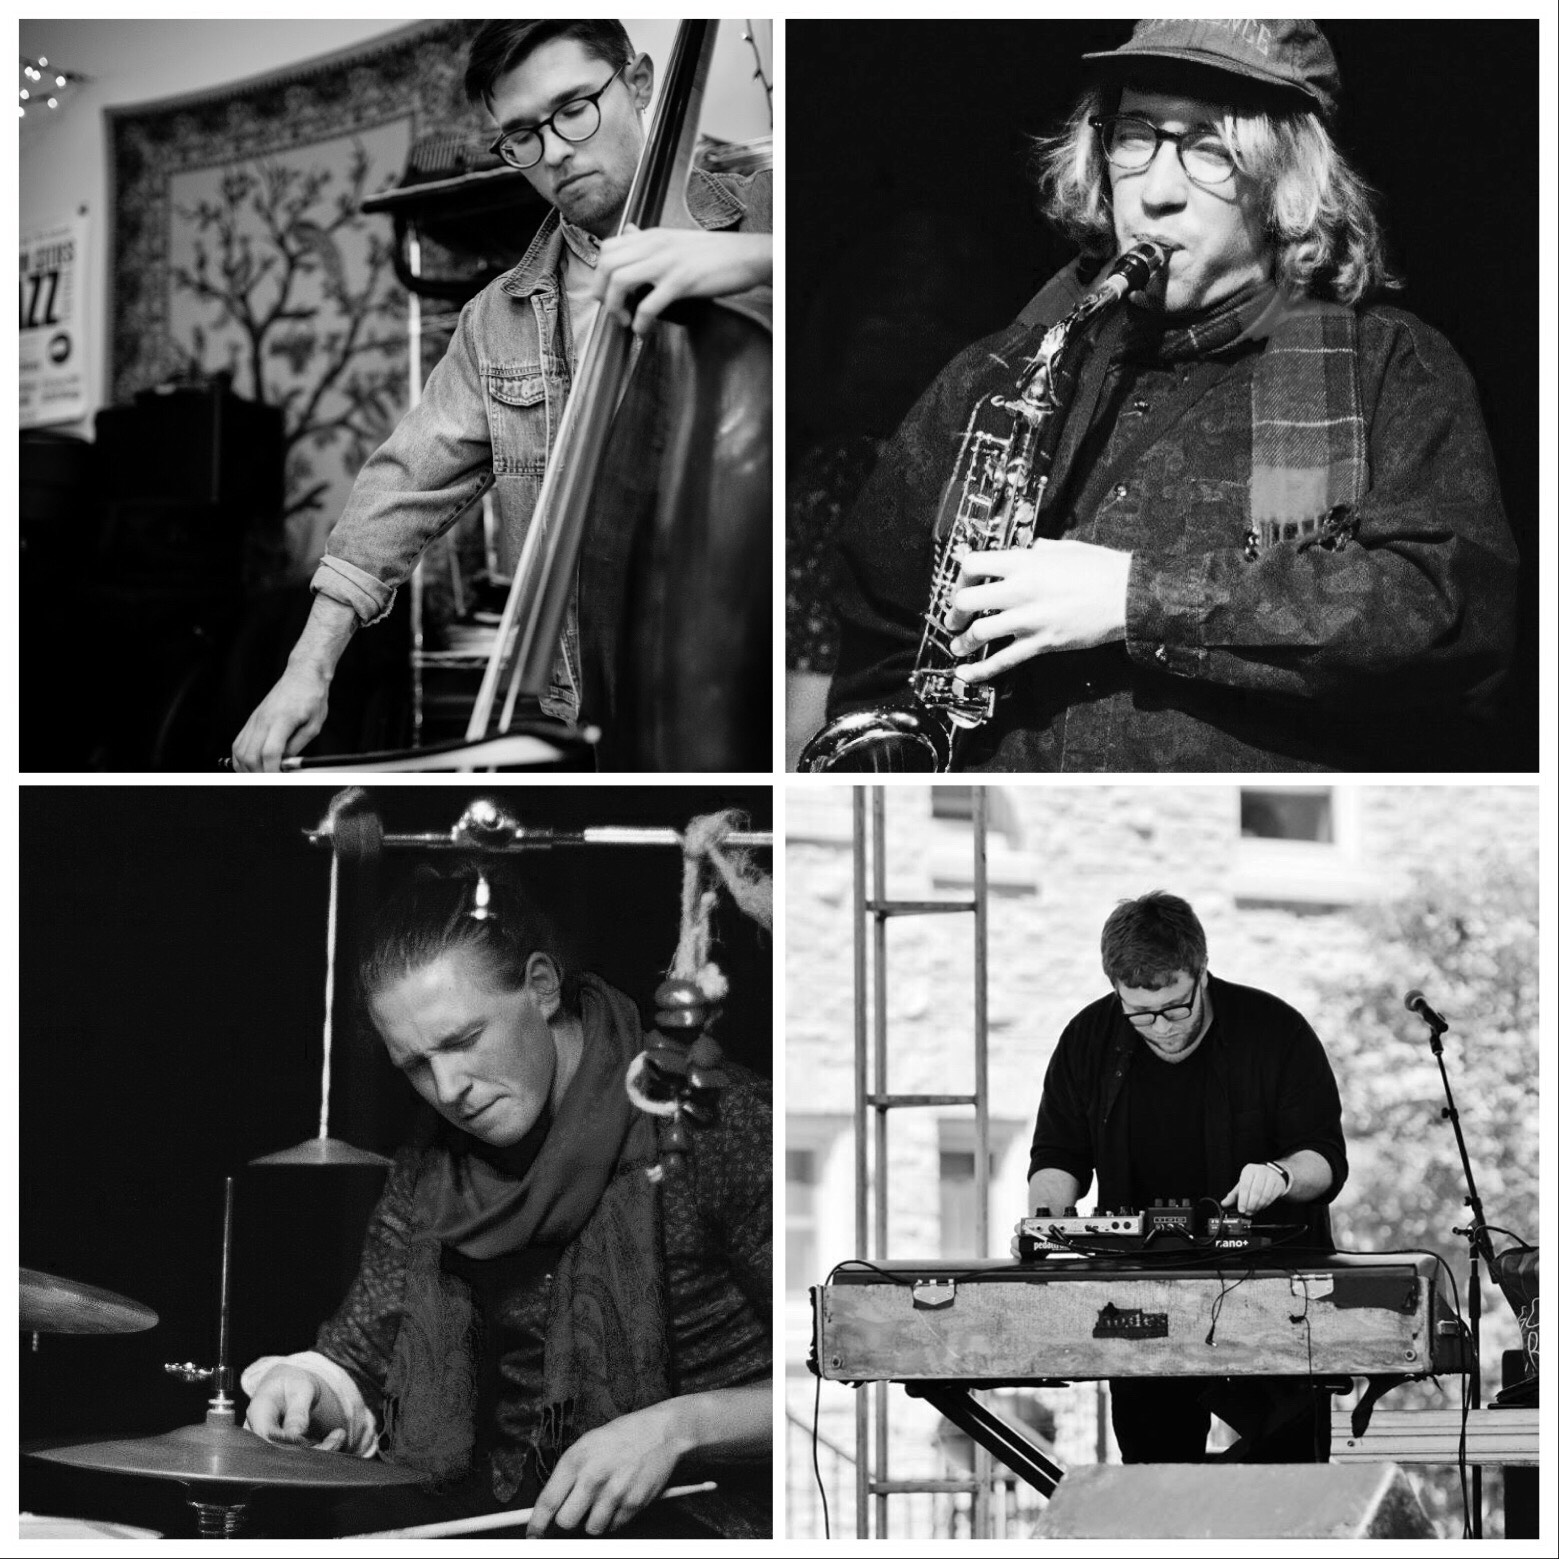 SHAPER - Shaper is a Minneapolis-based quartet that performs original music and collective improvisations. Having no one leader, alto saxist Will Fraser (Wild Firth), pianist Matt Blair (YINS, Collector), bassist Ryan Hays (Sister Species, Matra), and drummer Jack Lussenden (Good Trouble) explore dynamic interplay to create songs and sounds.